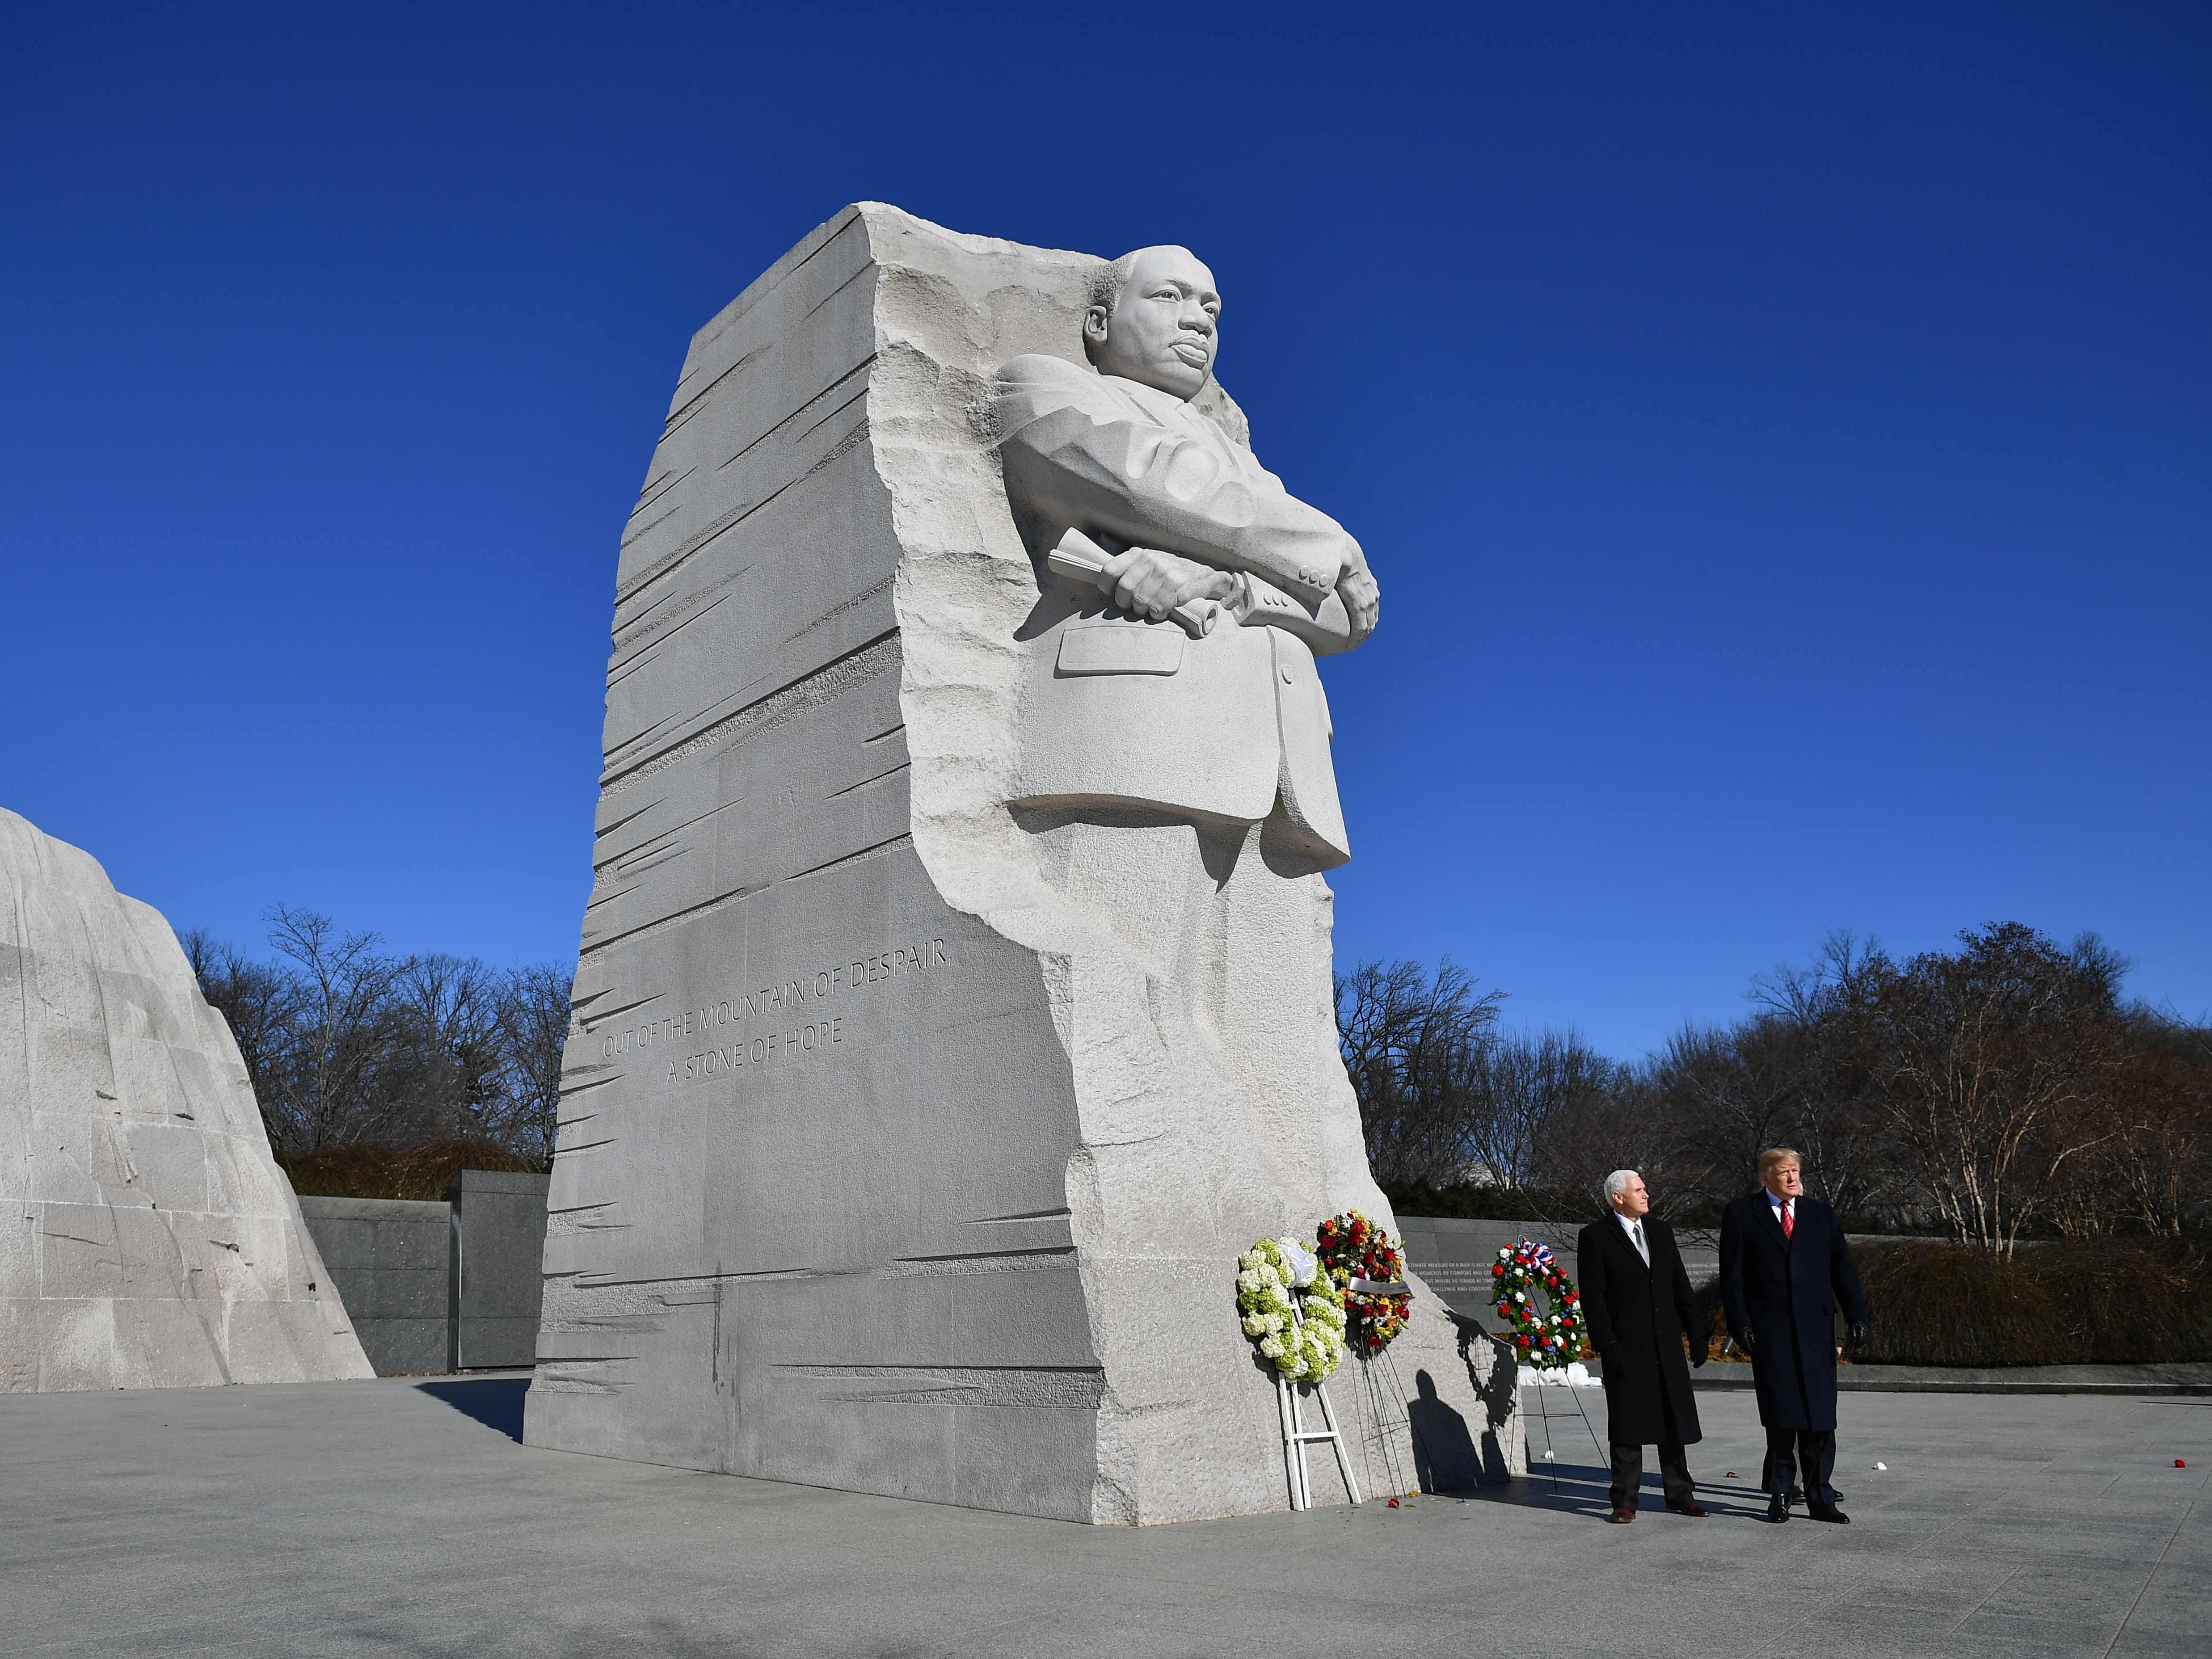 President Donald Trump and Vice President Mike Pence visit the Martin Luther King Jr. Memorial in Washington, DC on Martin Luther King Day on Jan.21, 2019.